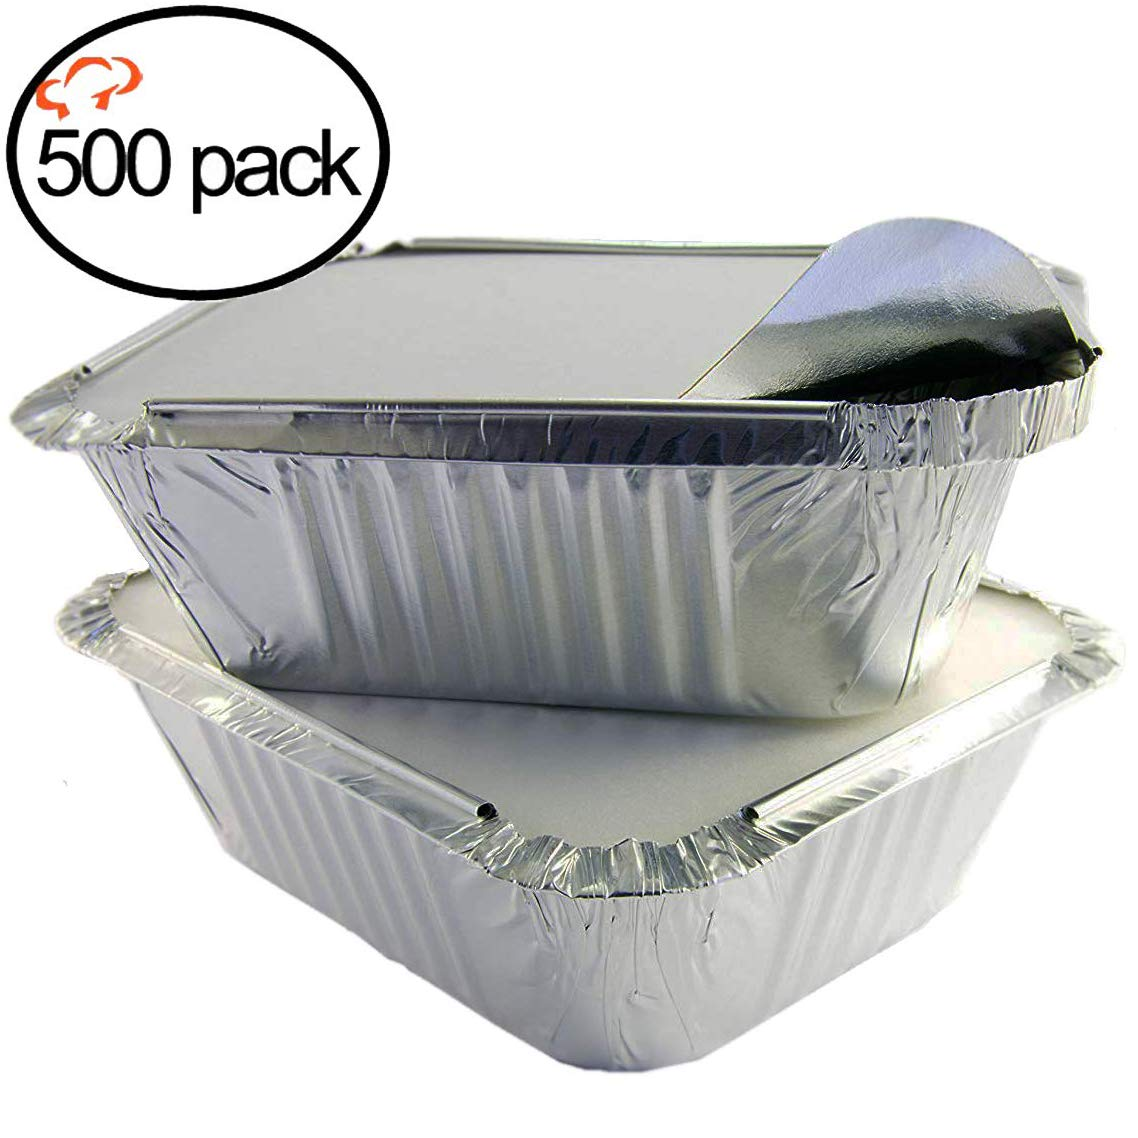 Tiger Chef Aluminum Pans with Lids - Foil Pans - Disposable to Go Containers for Take Out, Storing and Freezing - Oblong 1 LB 5.56'' X 4.56'' X 1.63'' with Board Lids - 500 Pack